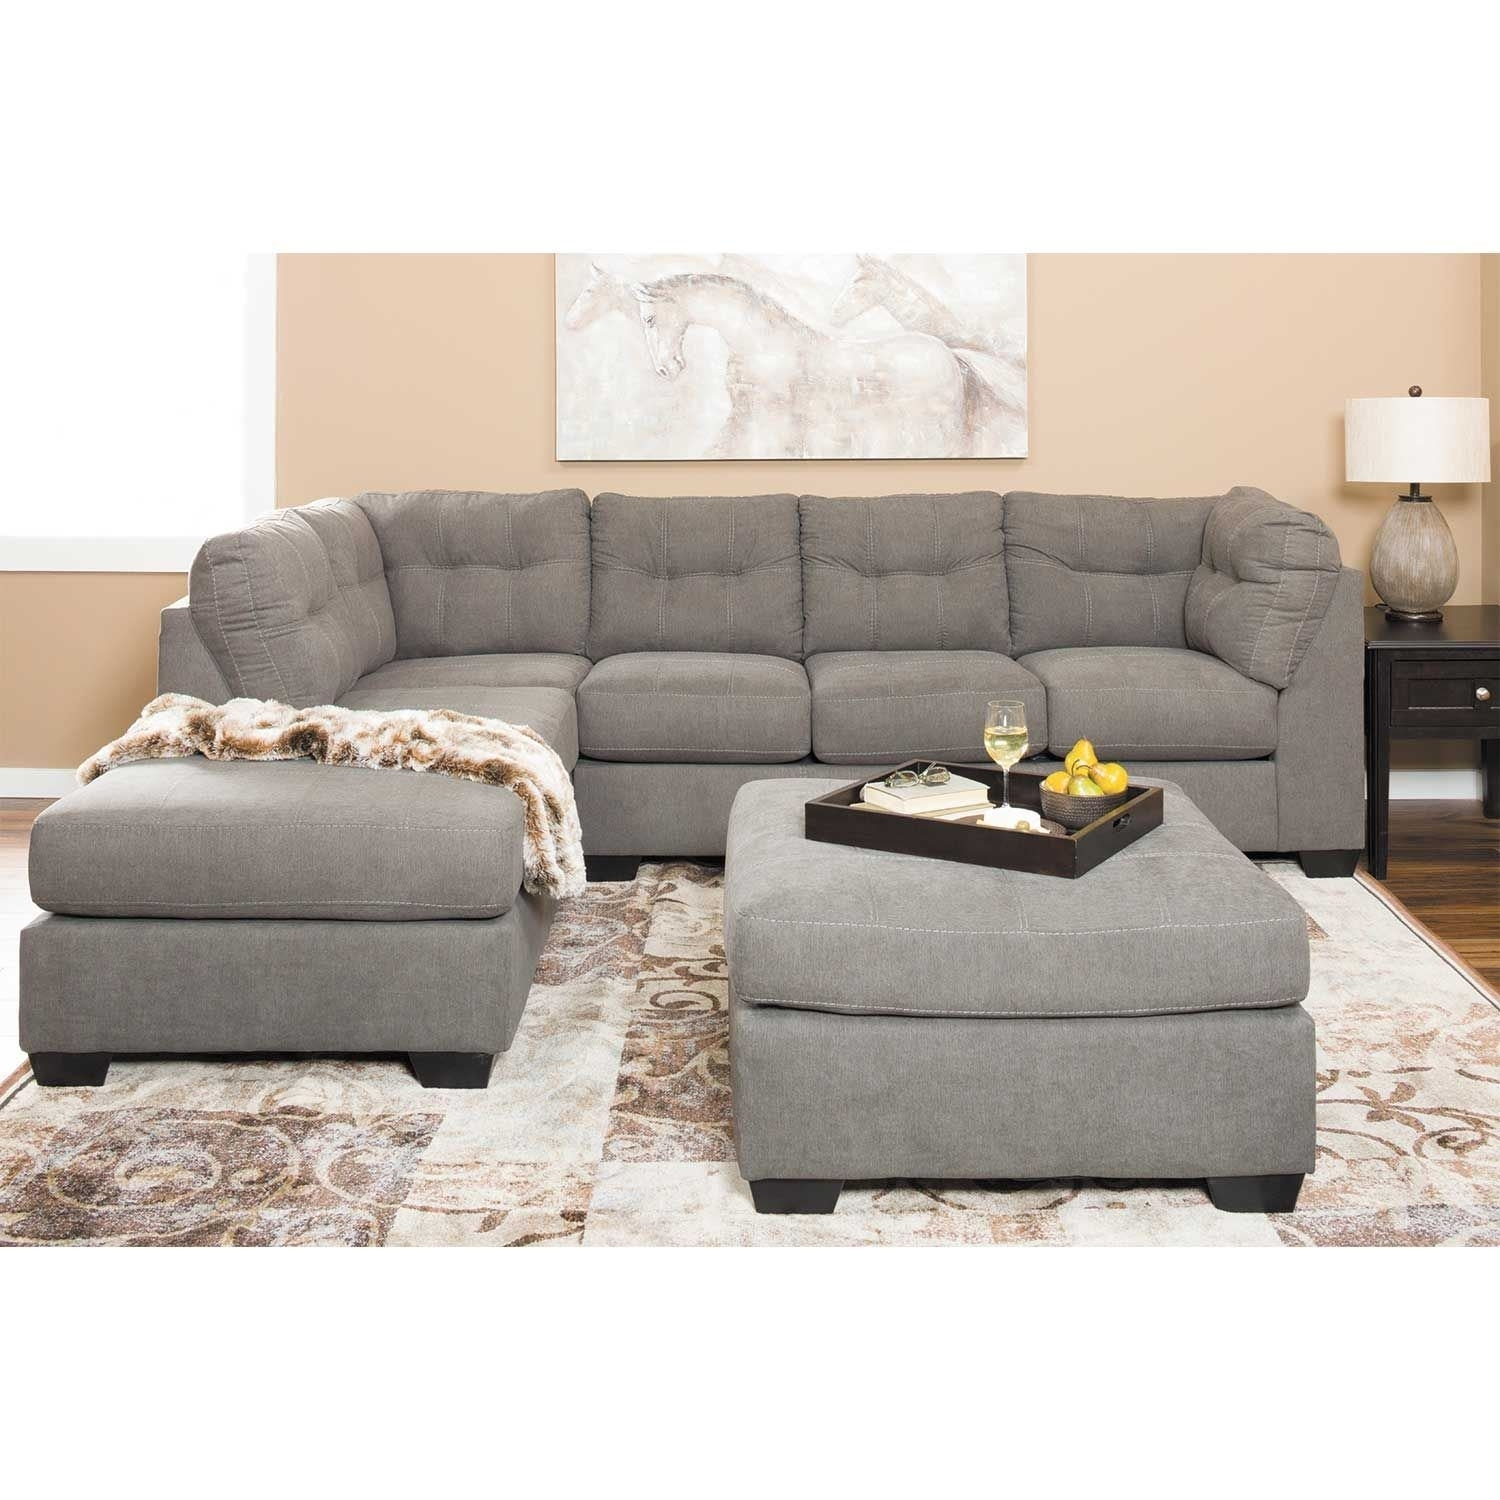 Maier Charcoal 2 Piece Sectional With Laf Chaise | 4520016/67 With Marissa Ii 3 Piece Sectionals (Image 10 of 25)